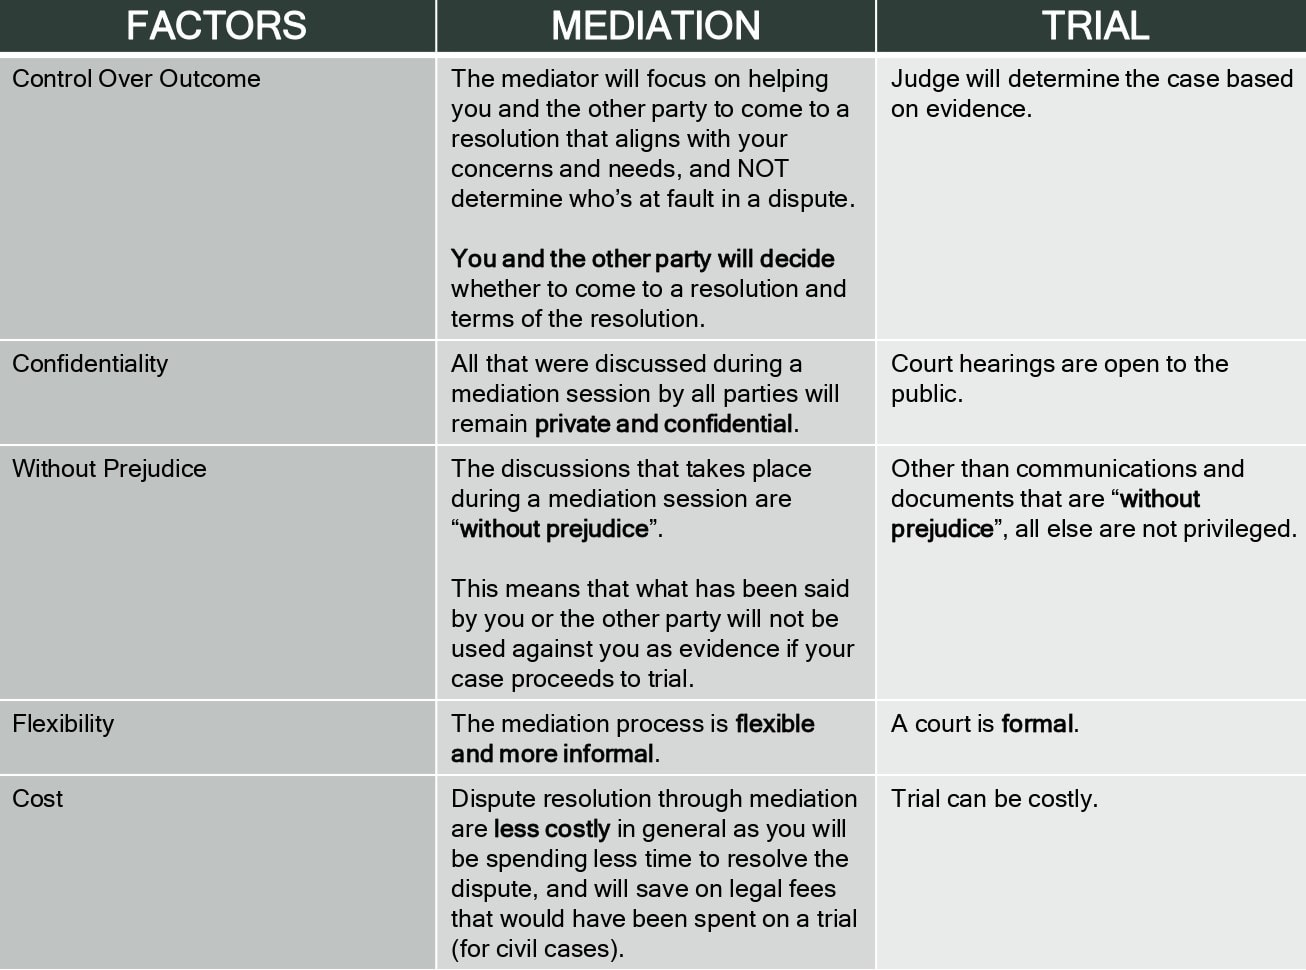 A table showing the difference between mediation and trial